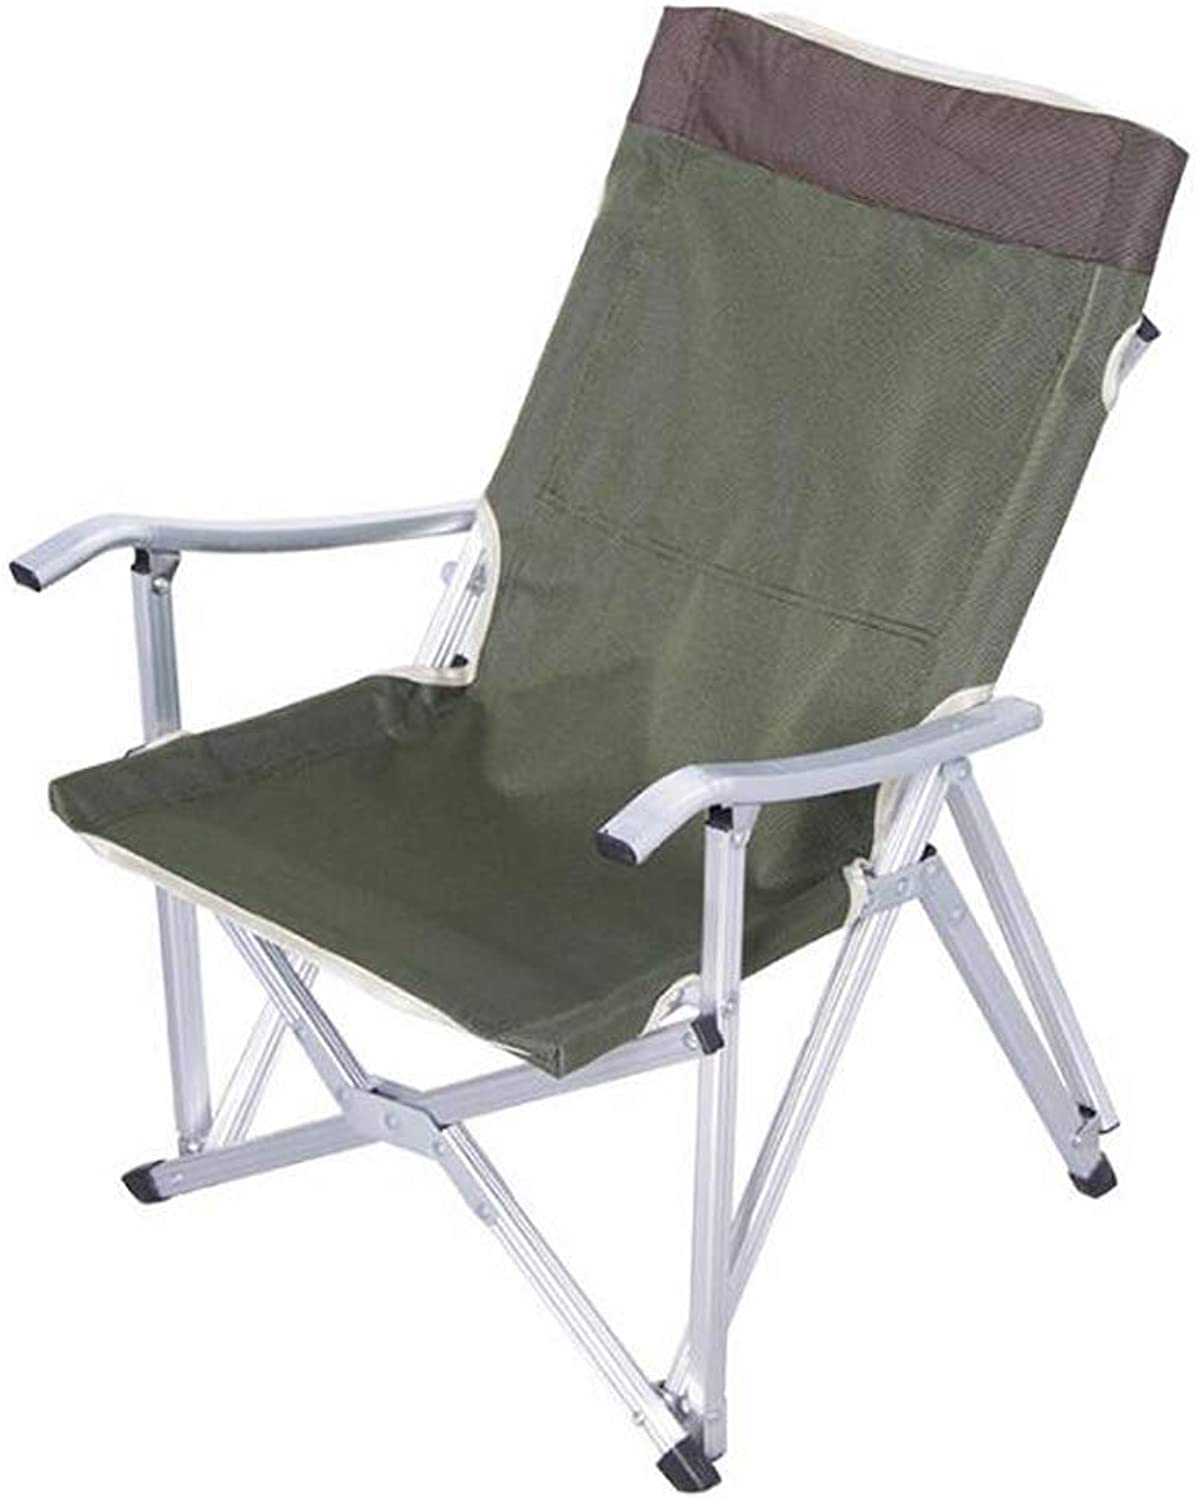 RFJJAL Extended Folding Camping Chair, Portable Lightweight Collapsible Moon Chair Stool with Carrying Bag for Hiking Walking Fishing Travel Beach Outdoors (color   Green)